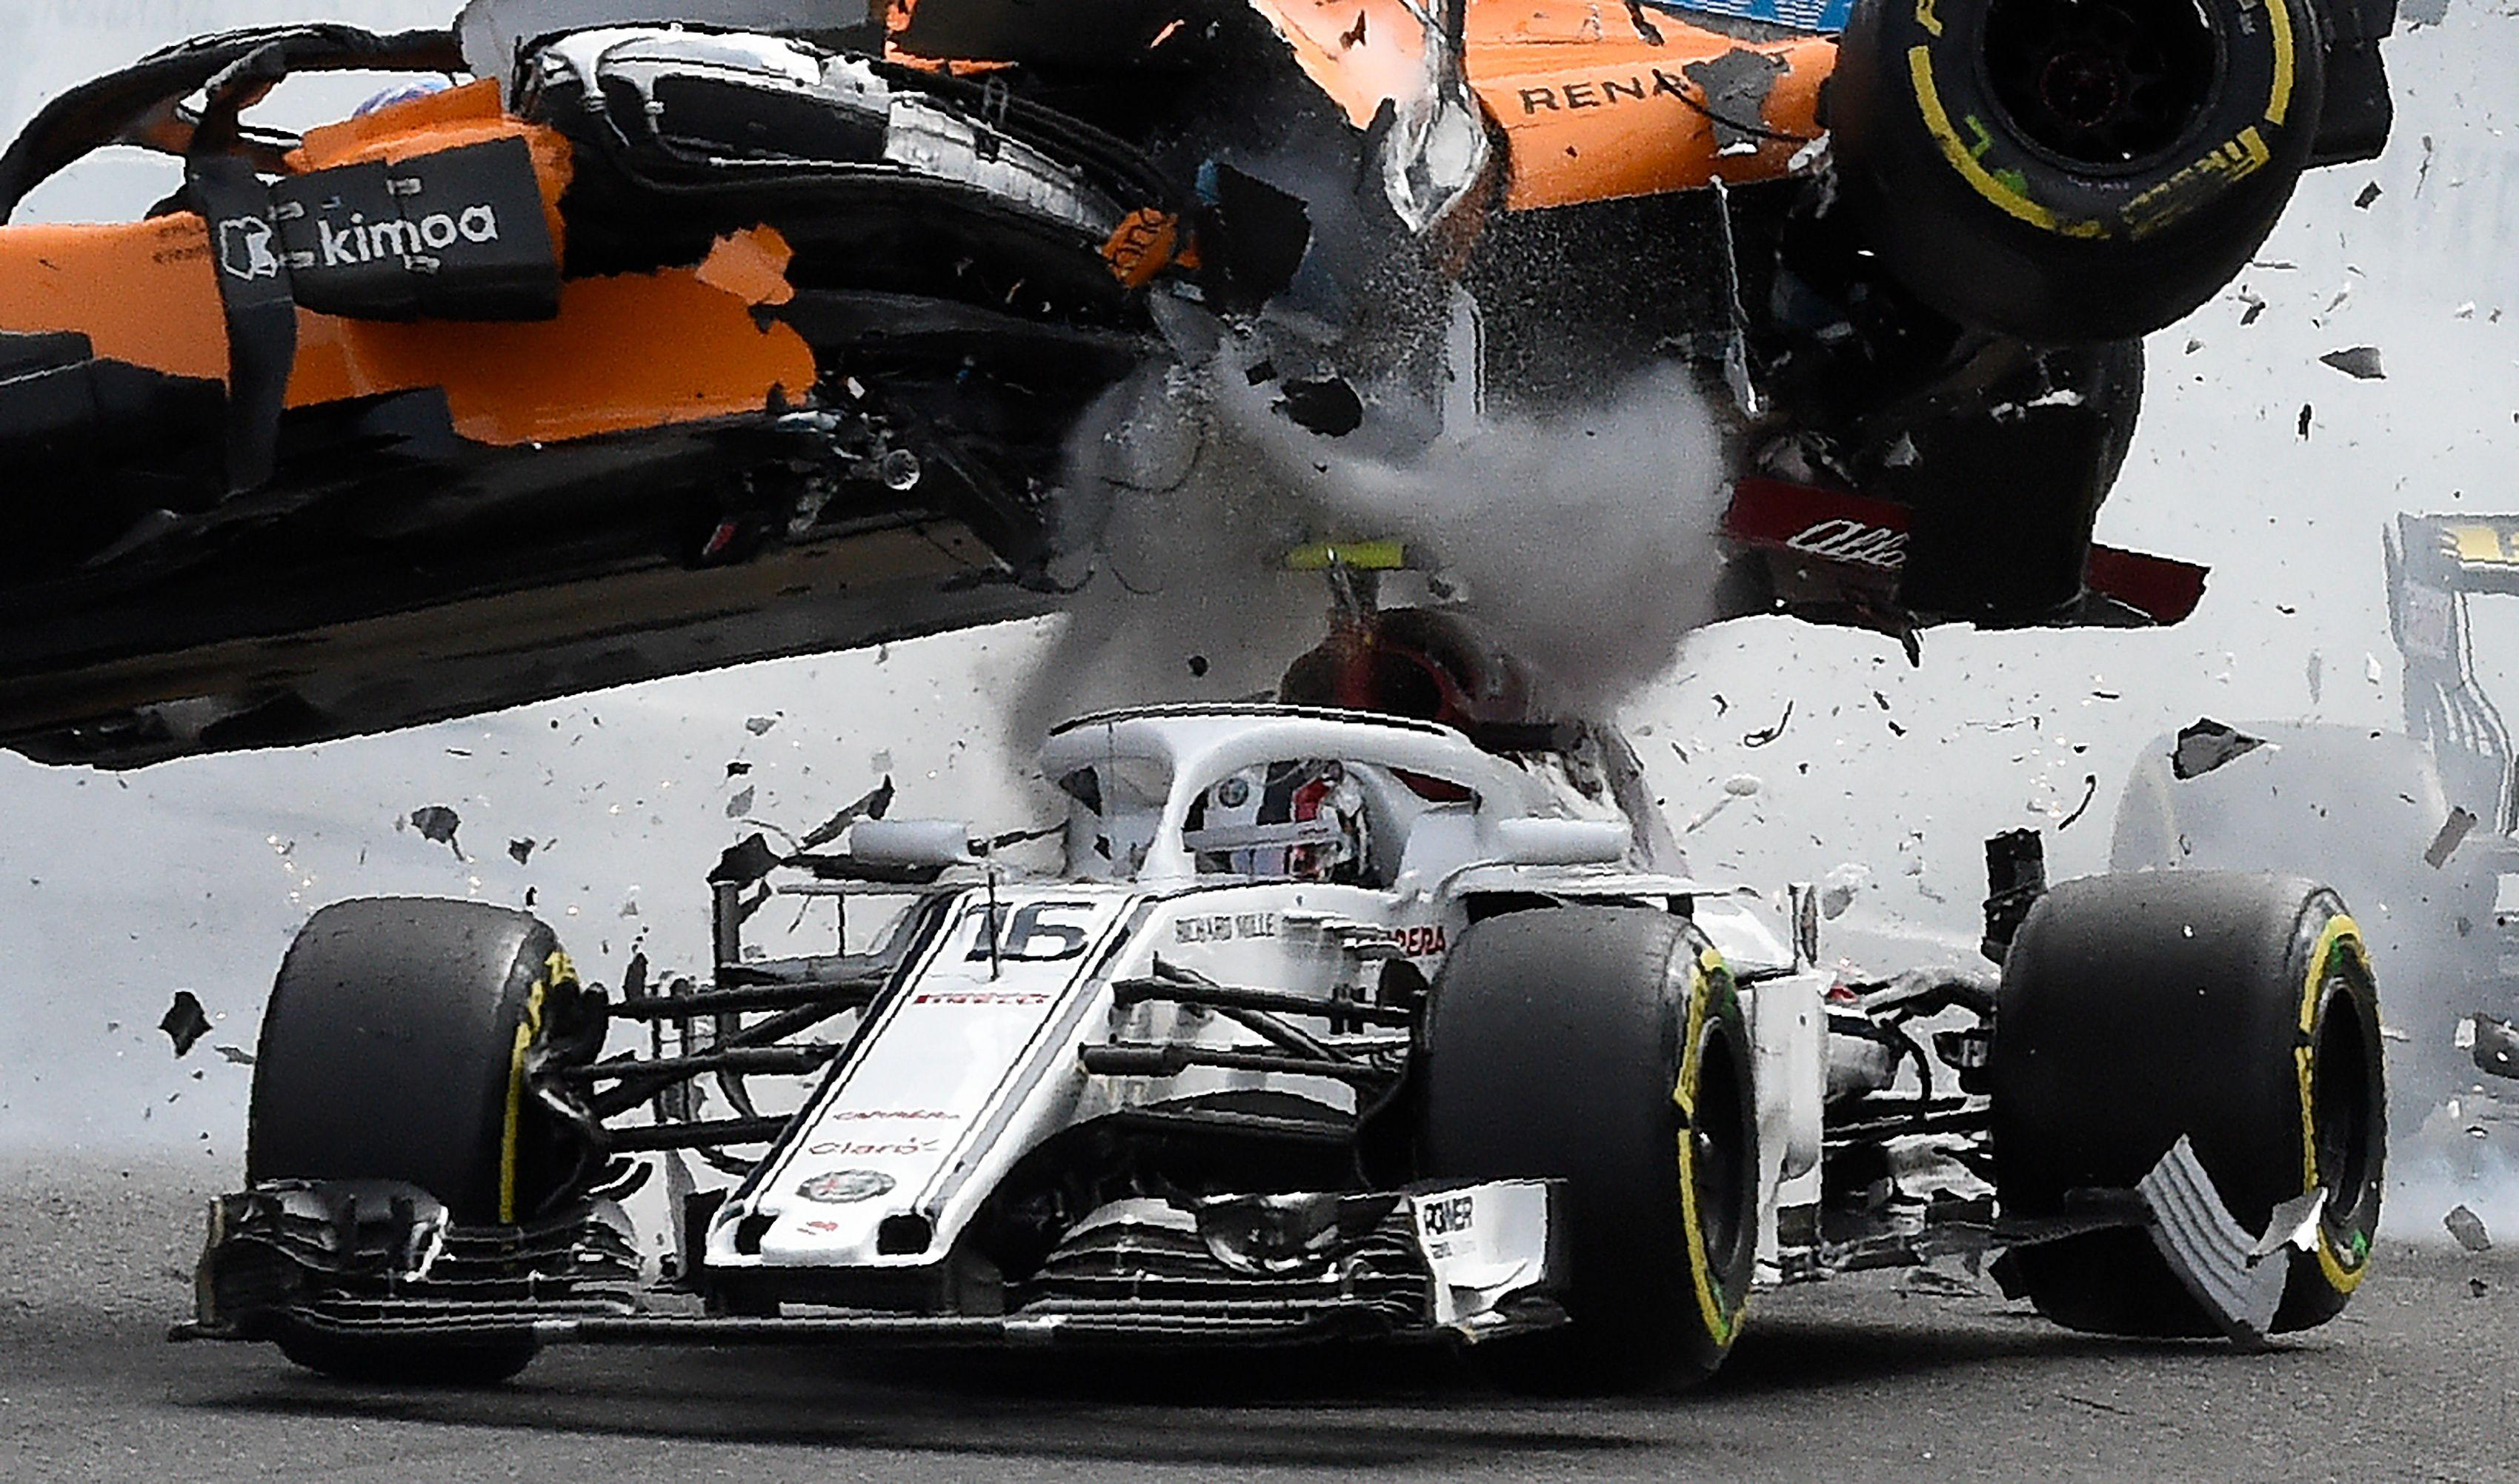 The controversial halo system saved Charles Leclerc from serious injury in the Belgian GP